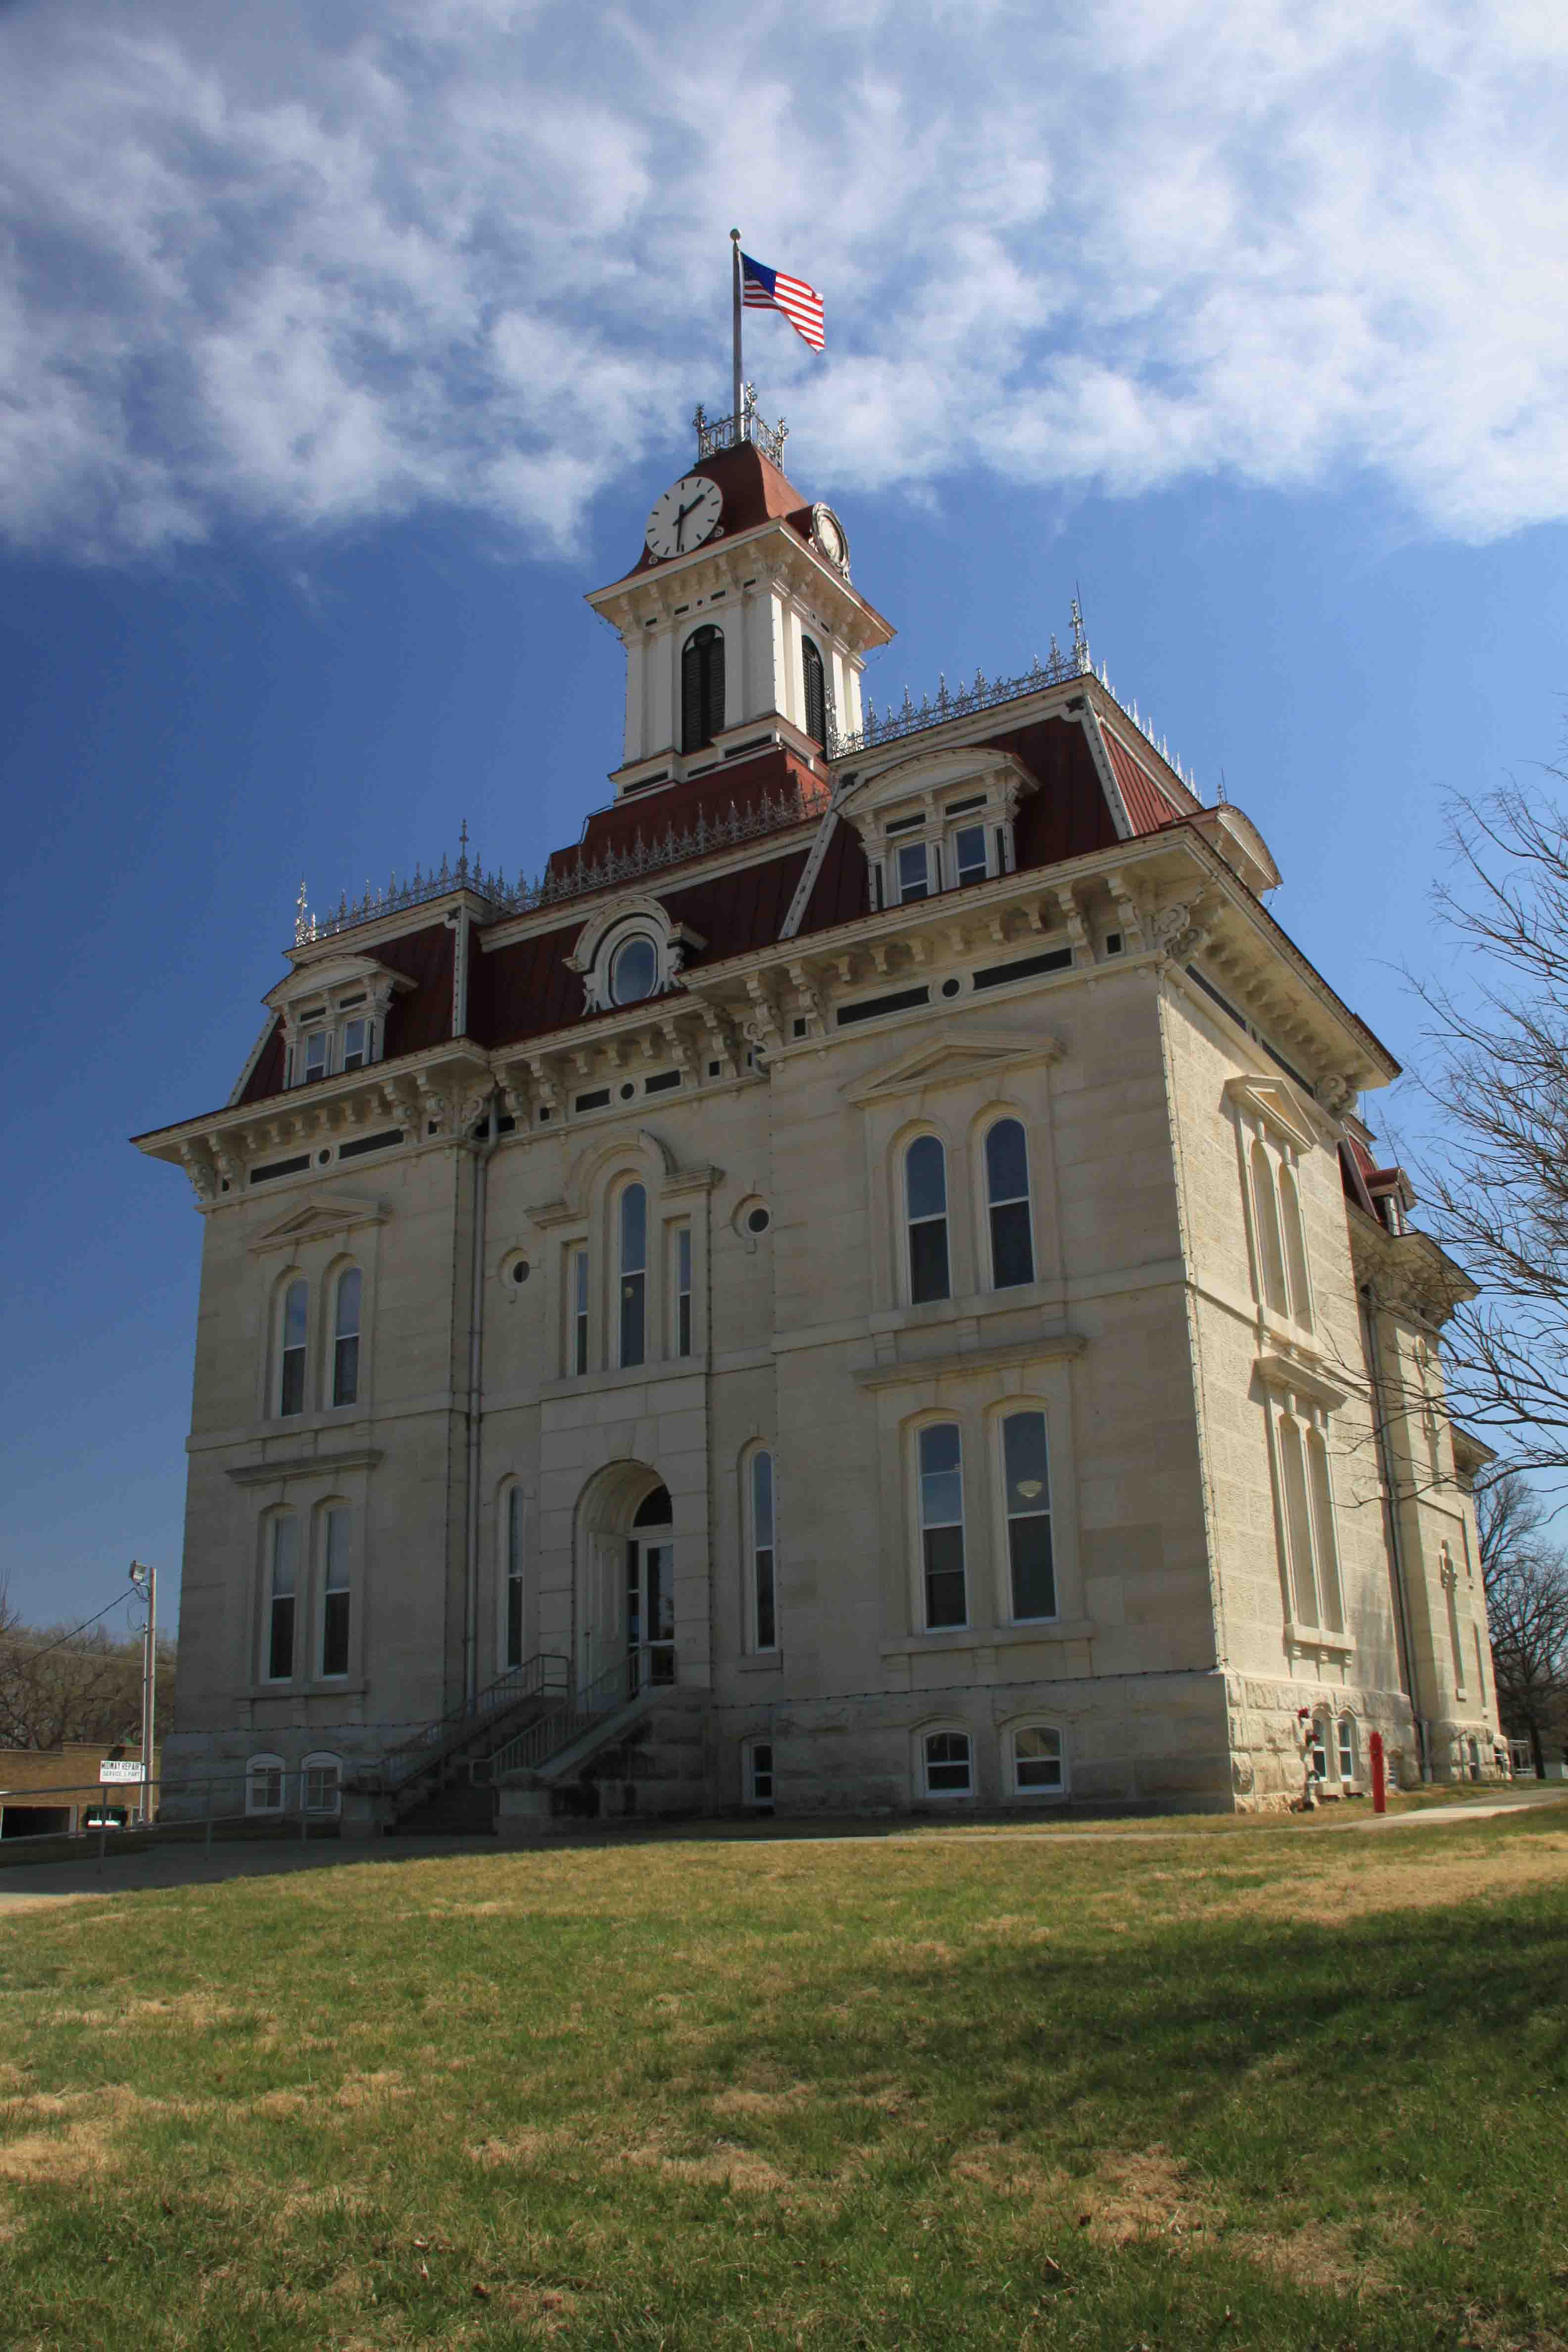 chase county courthouse in kanasa